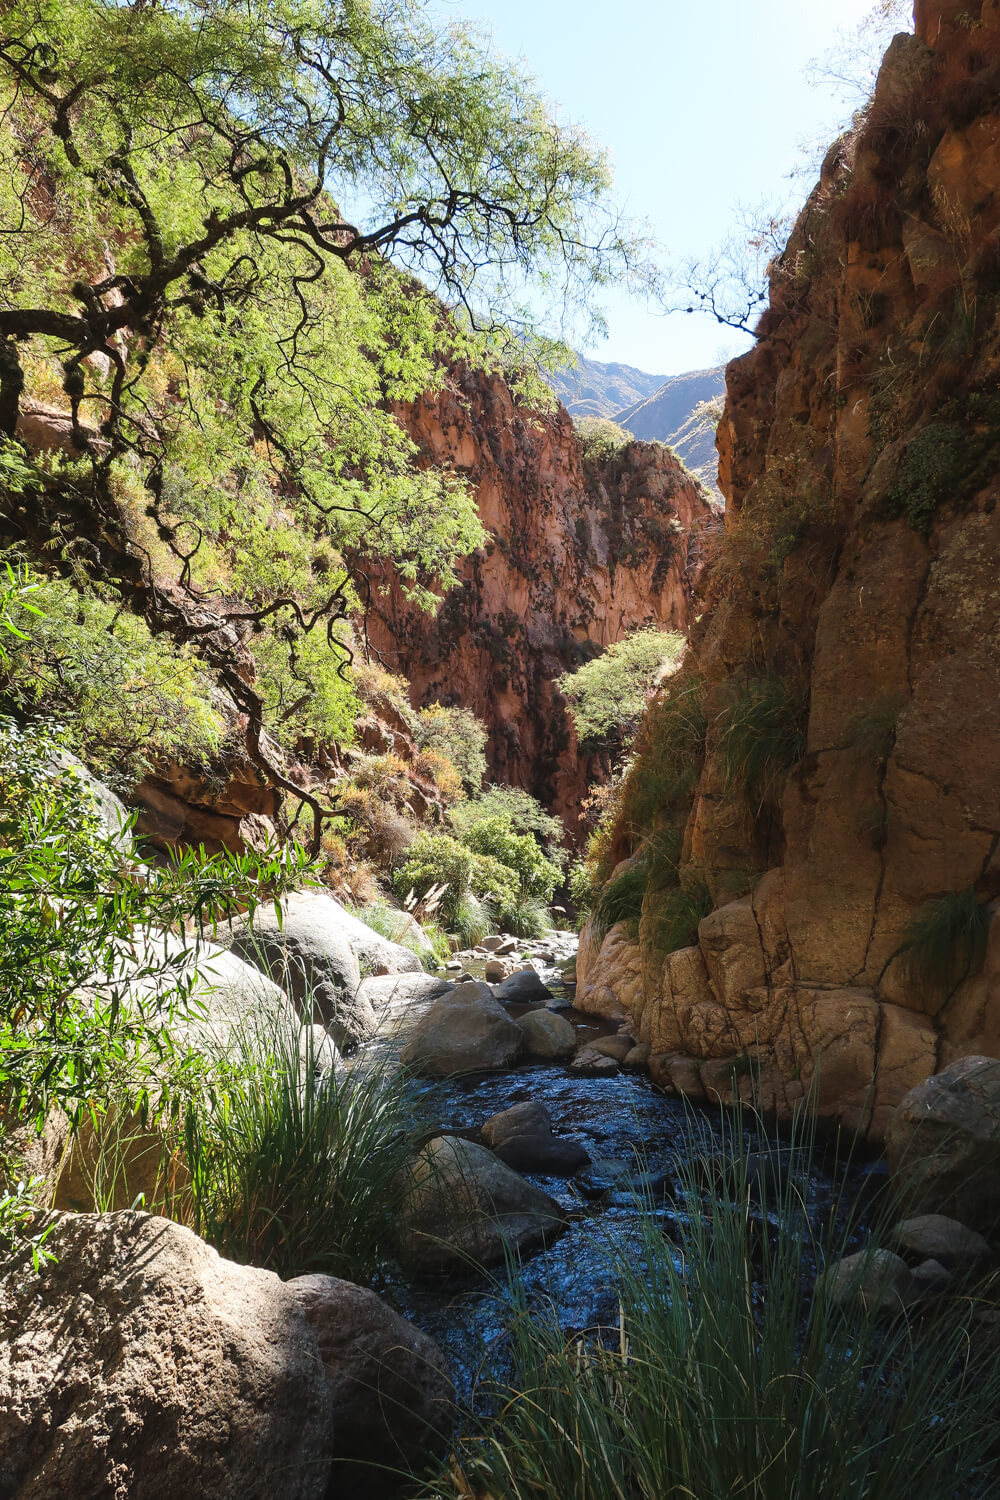 Things to do in Cafayate Argentine: Hike to the Casadas Waterfalls